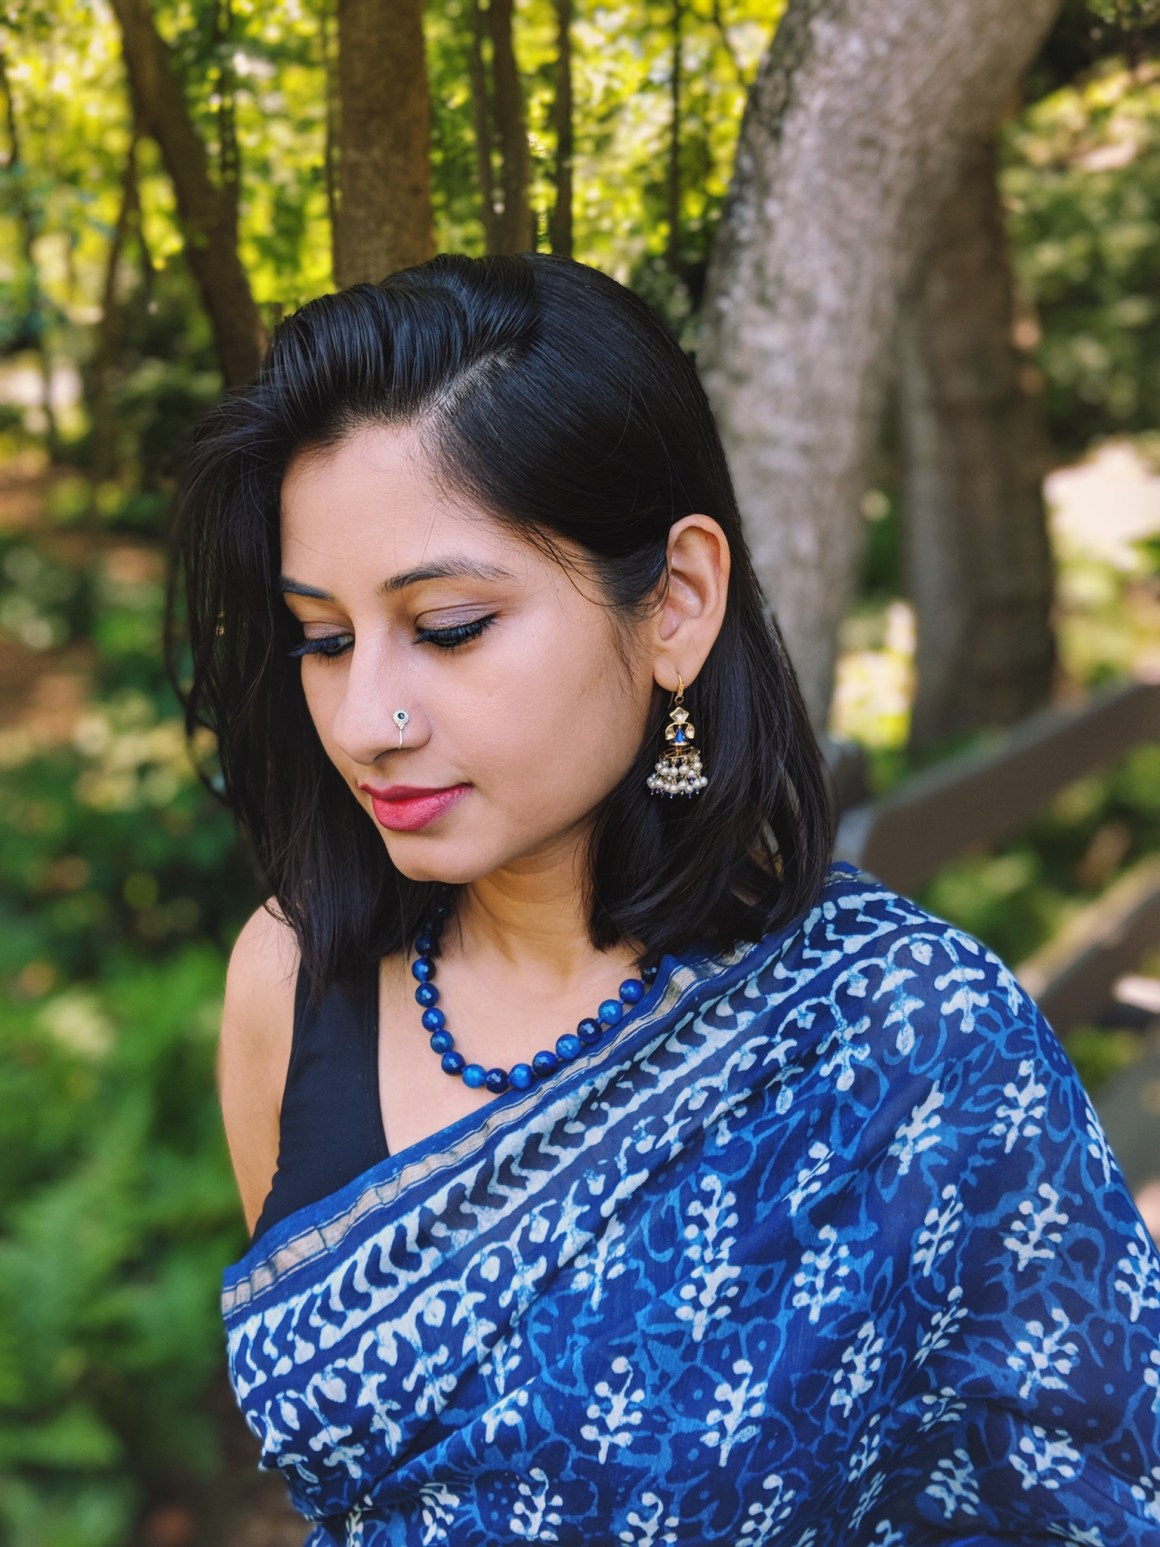 Indigo saree, nose pin